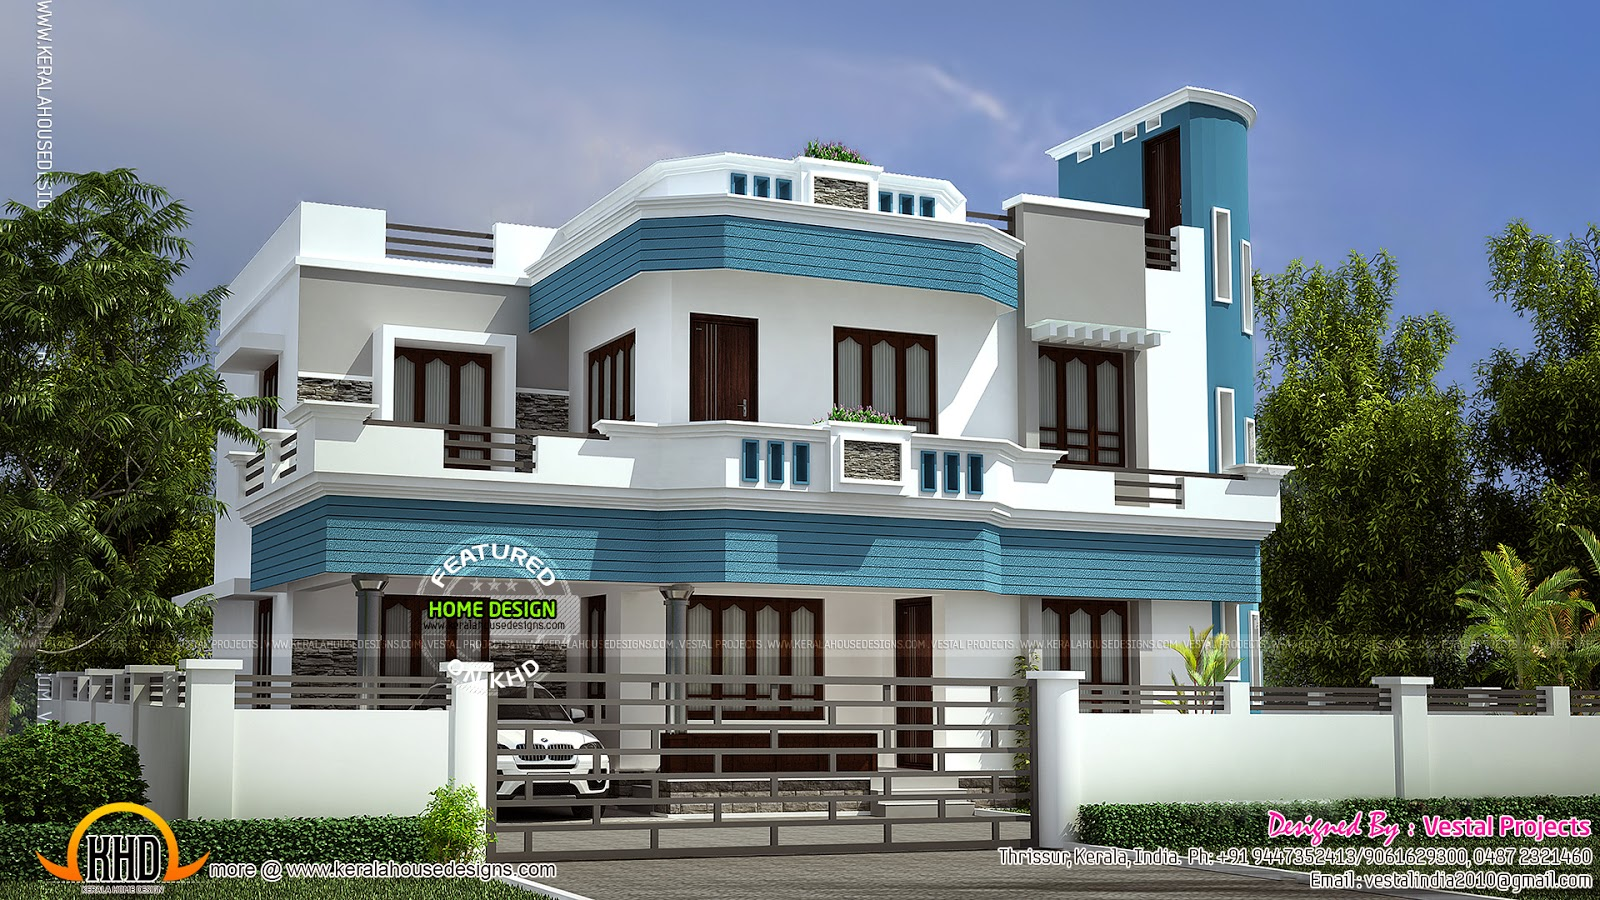 Awesome house by vestal projects kerala home design and floor plans - Design of home ...